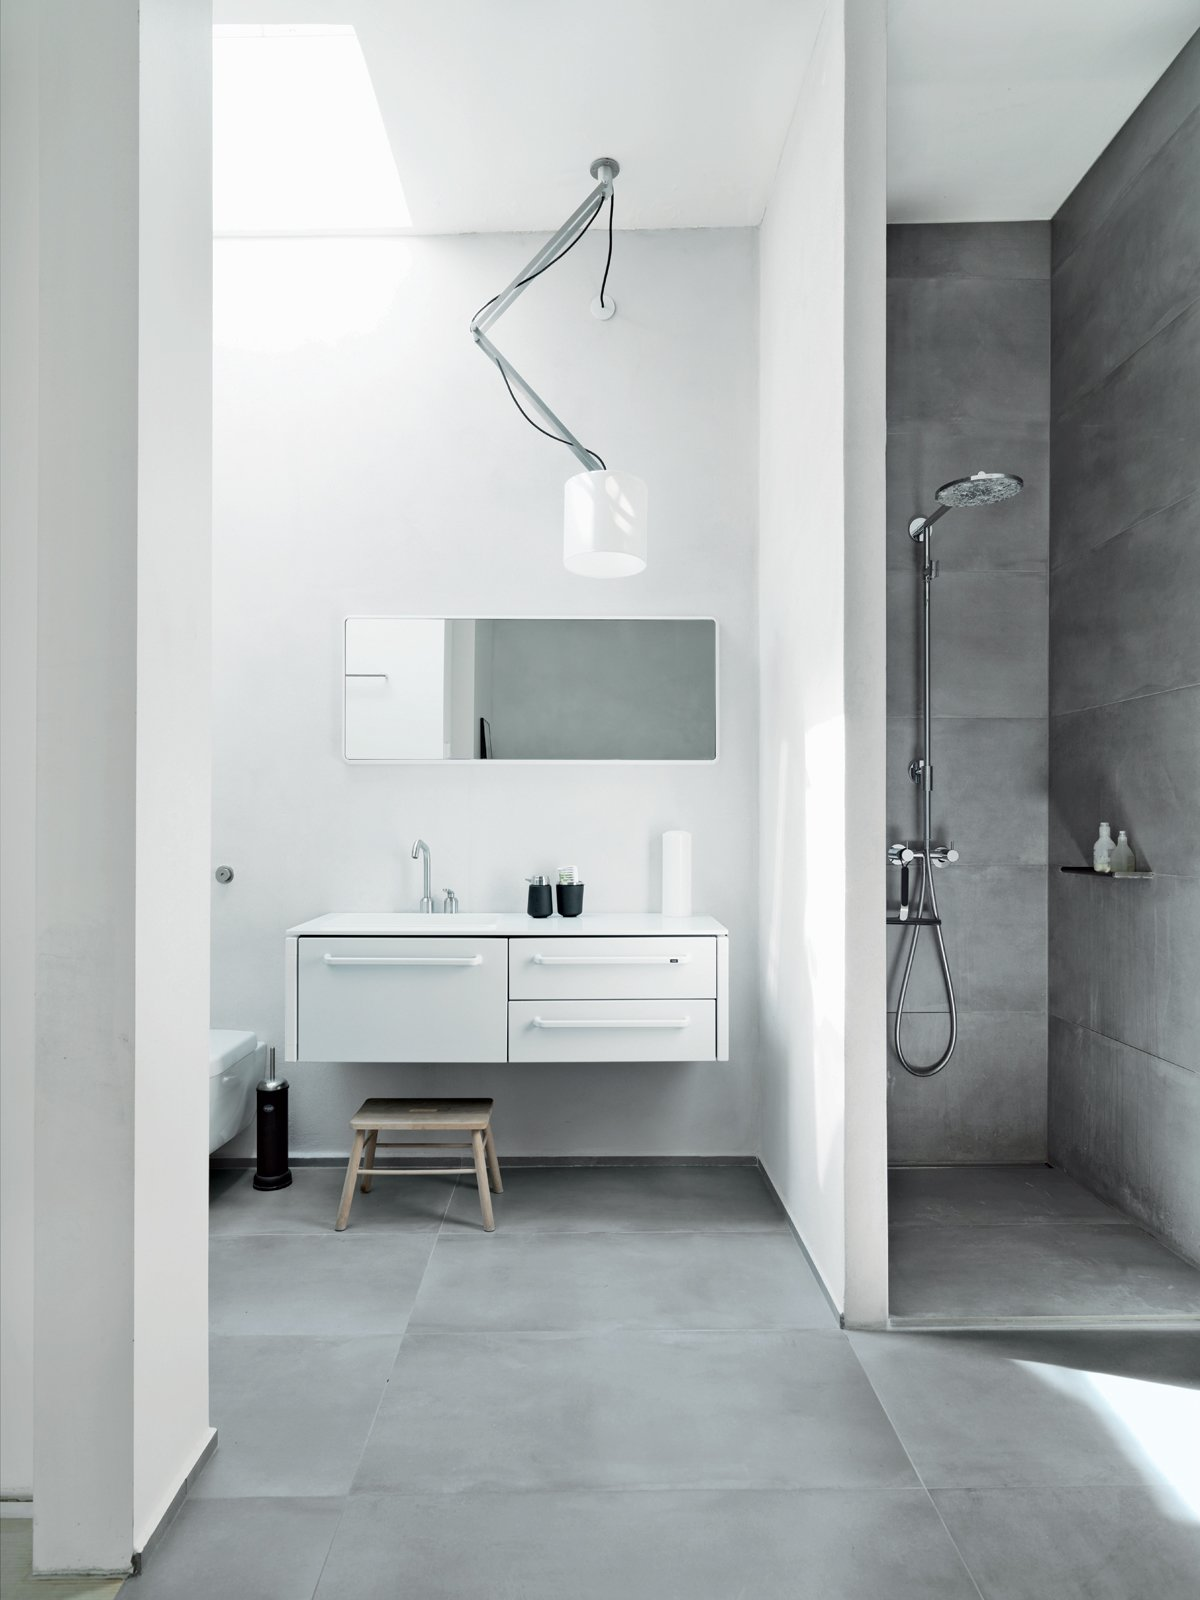 Incroyable Photo 7 Of 10 In 10 Ideas For The Minimalist Bathroom Of Your Dreams From  Bathroom   Dwell